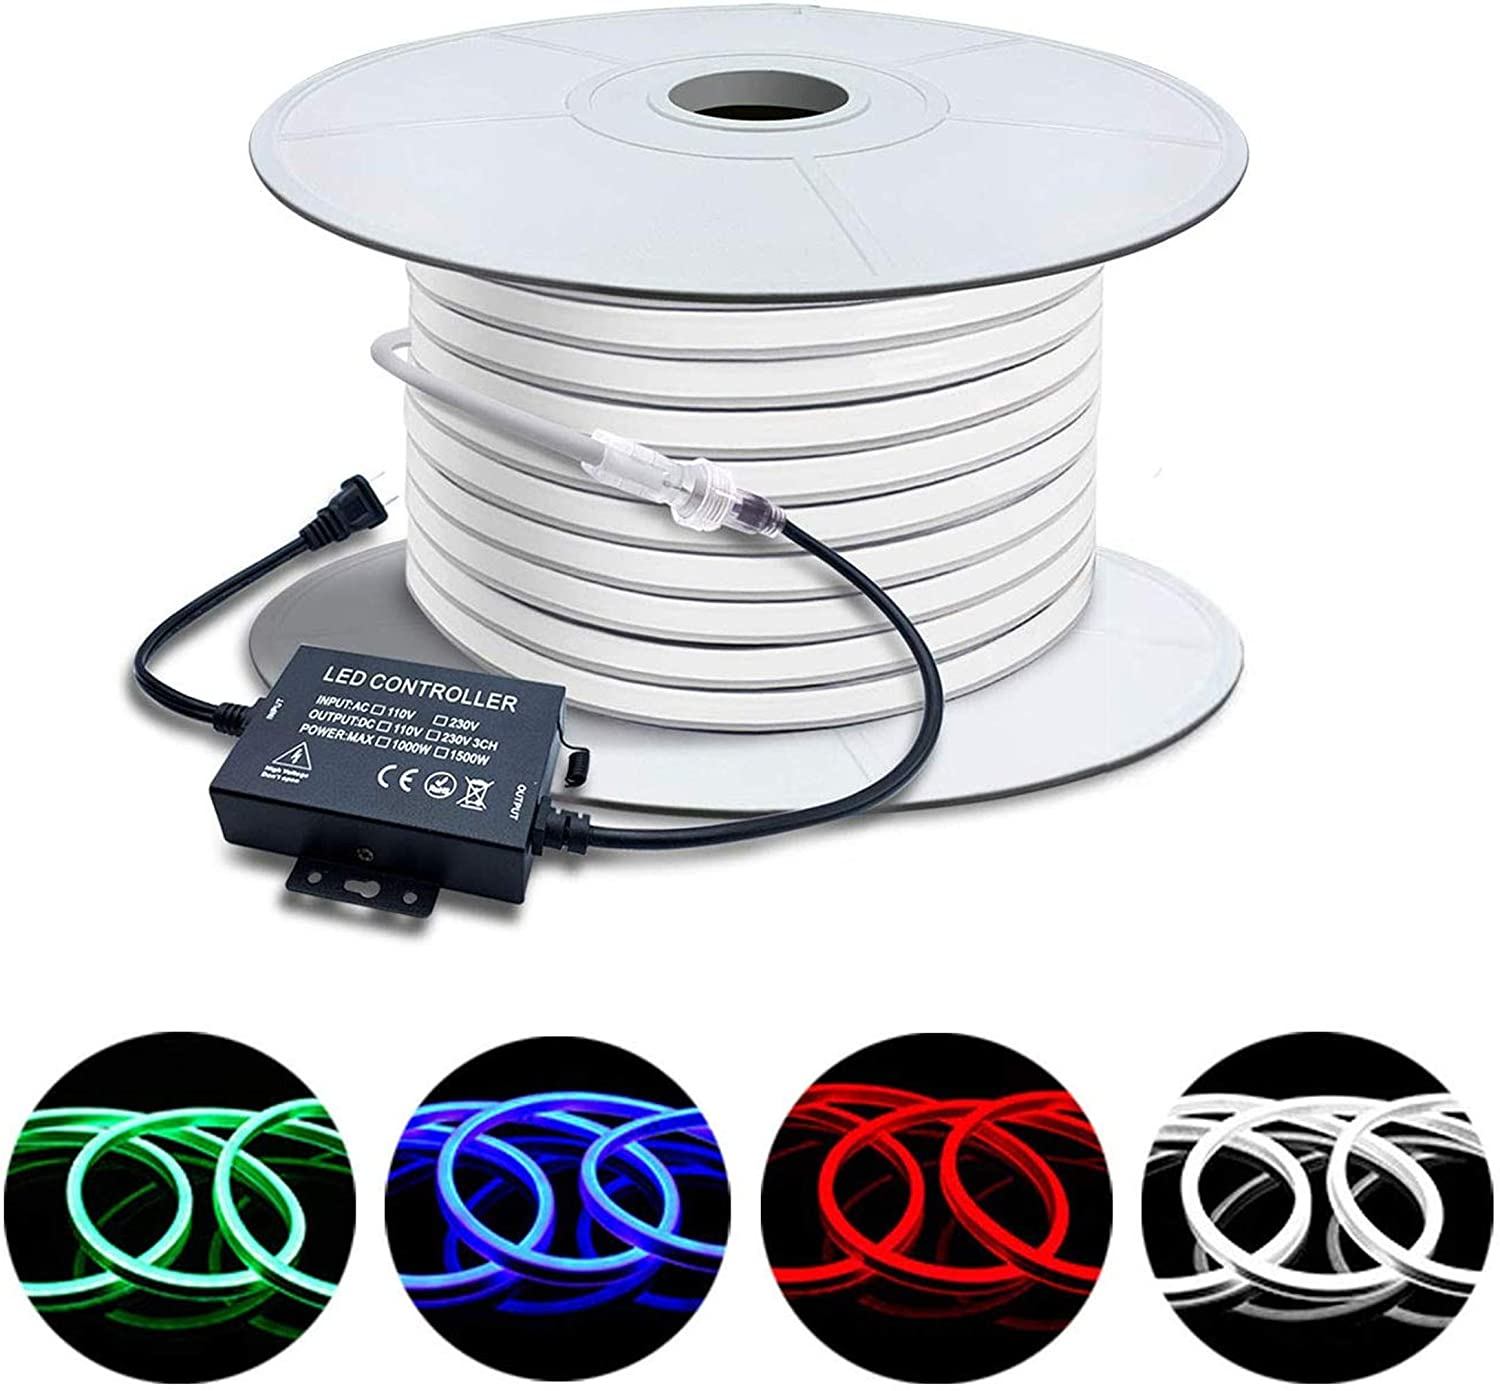 Safety and trust Brillihood 50ft 15m LED Large special price !! RGB Neon Rope Light 120V 150ft Max Li